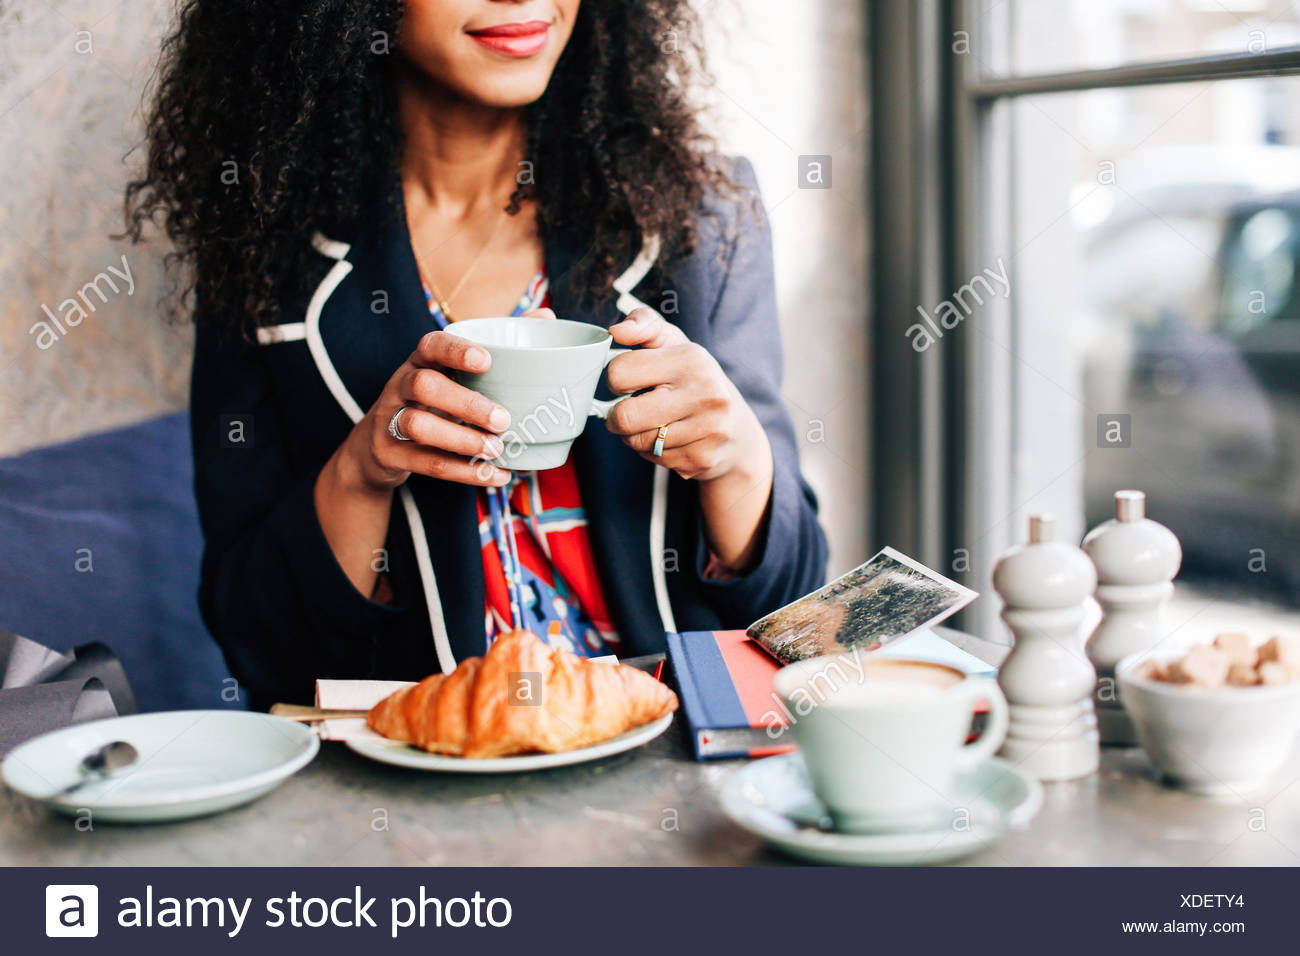 Cropped shot of woman holding Coffee cup in cafe Photo Stock